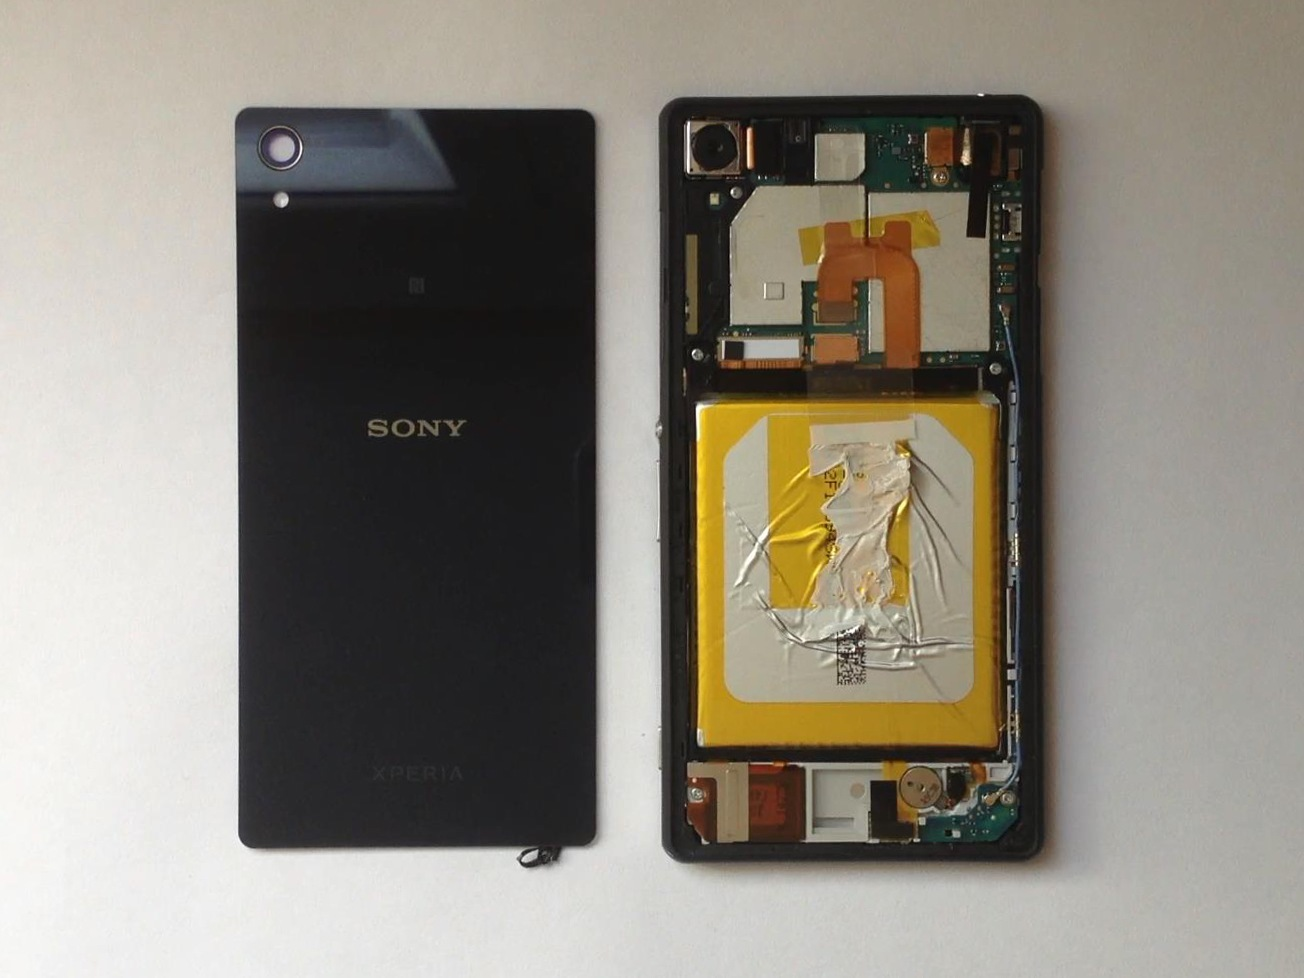 sony xperia z2 manual pdf